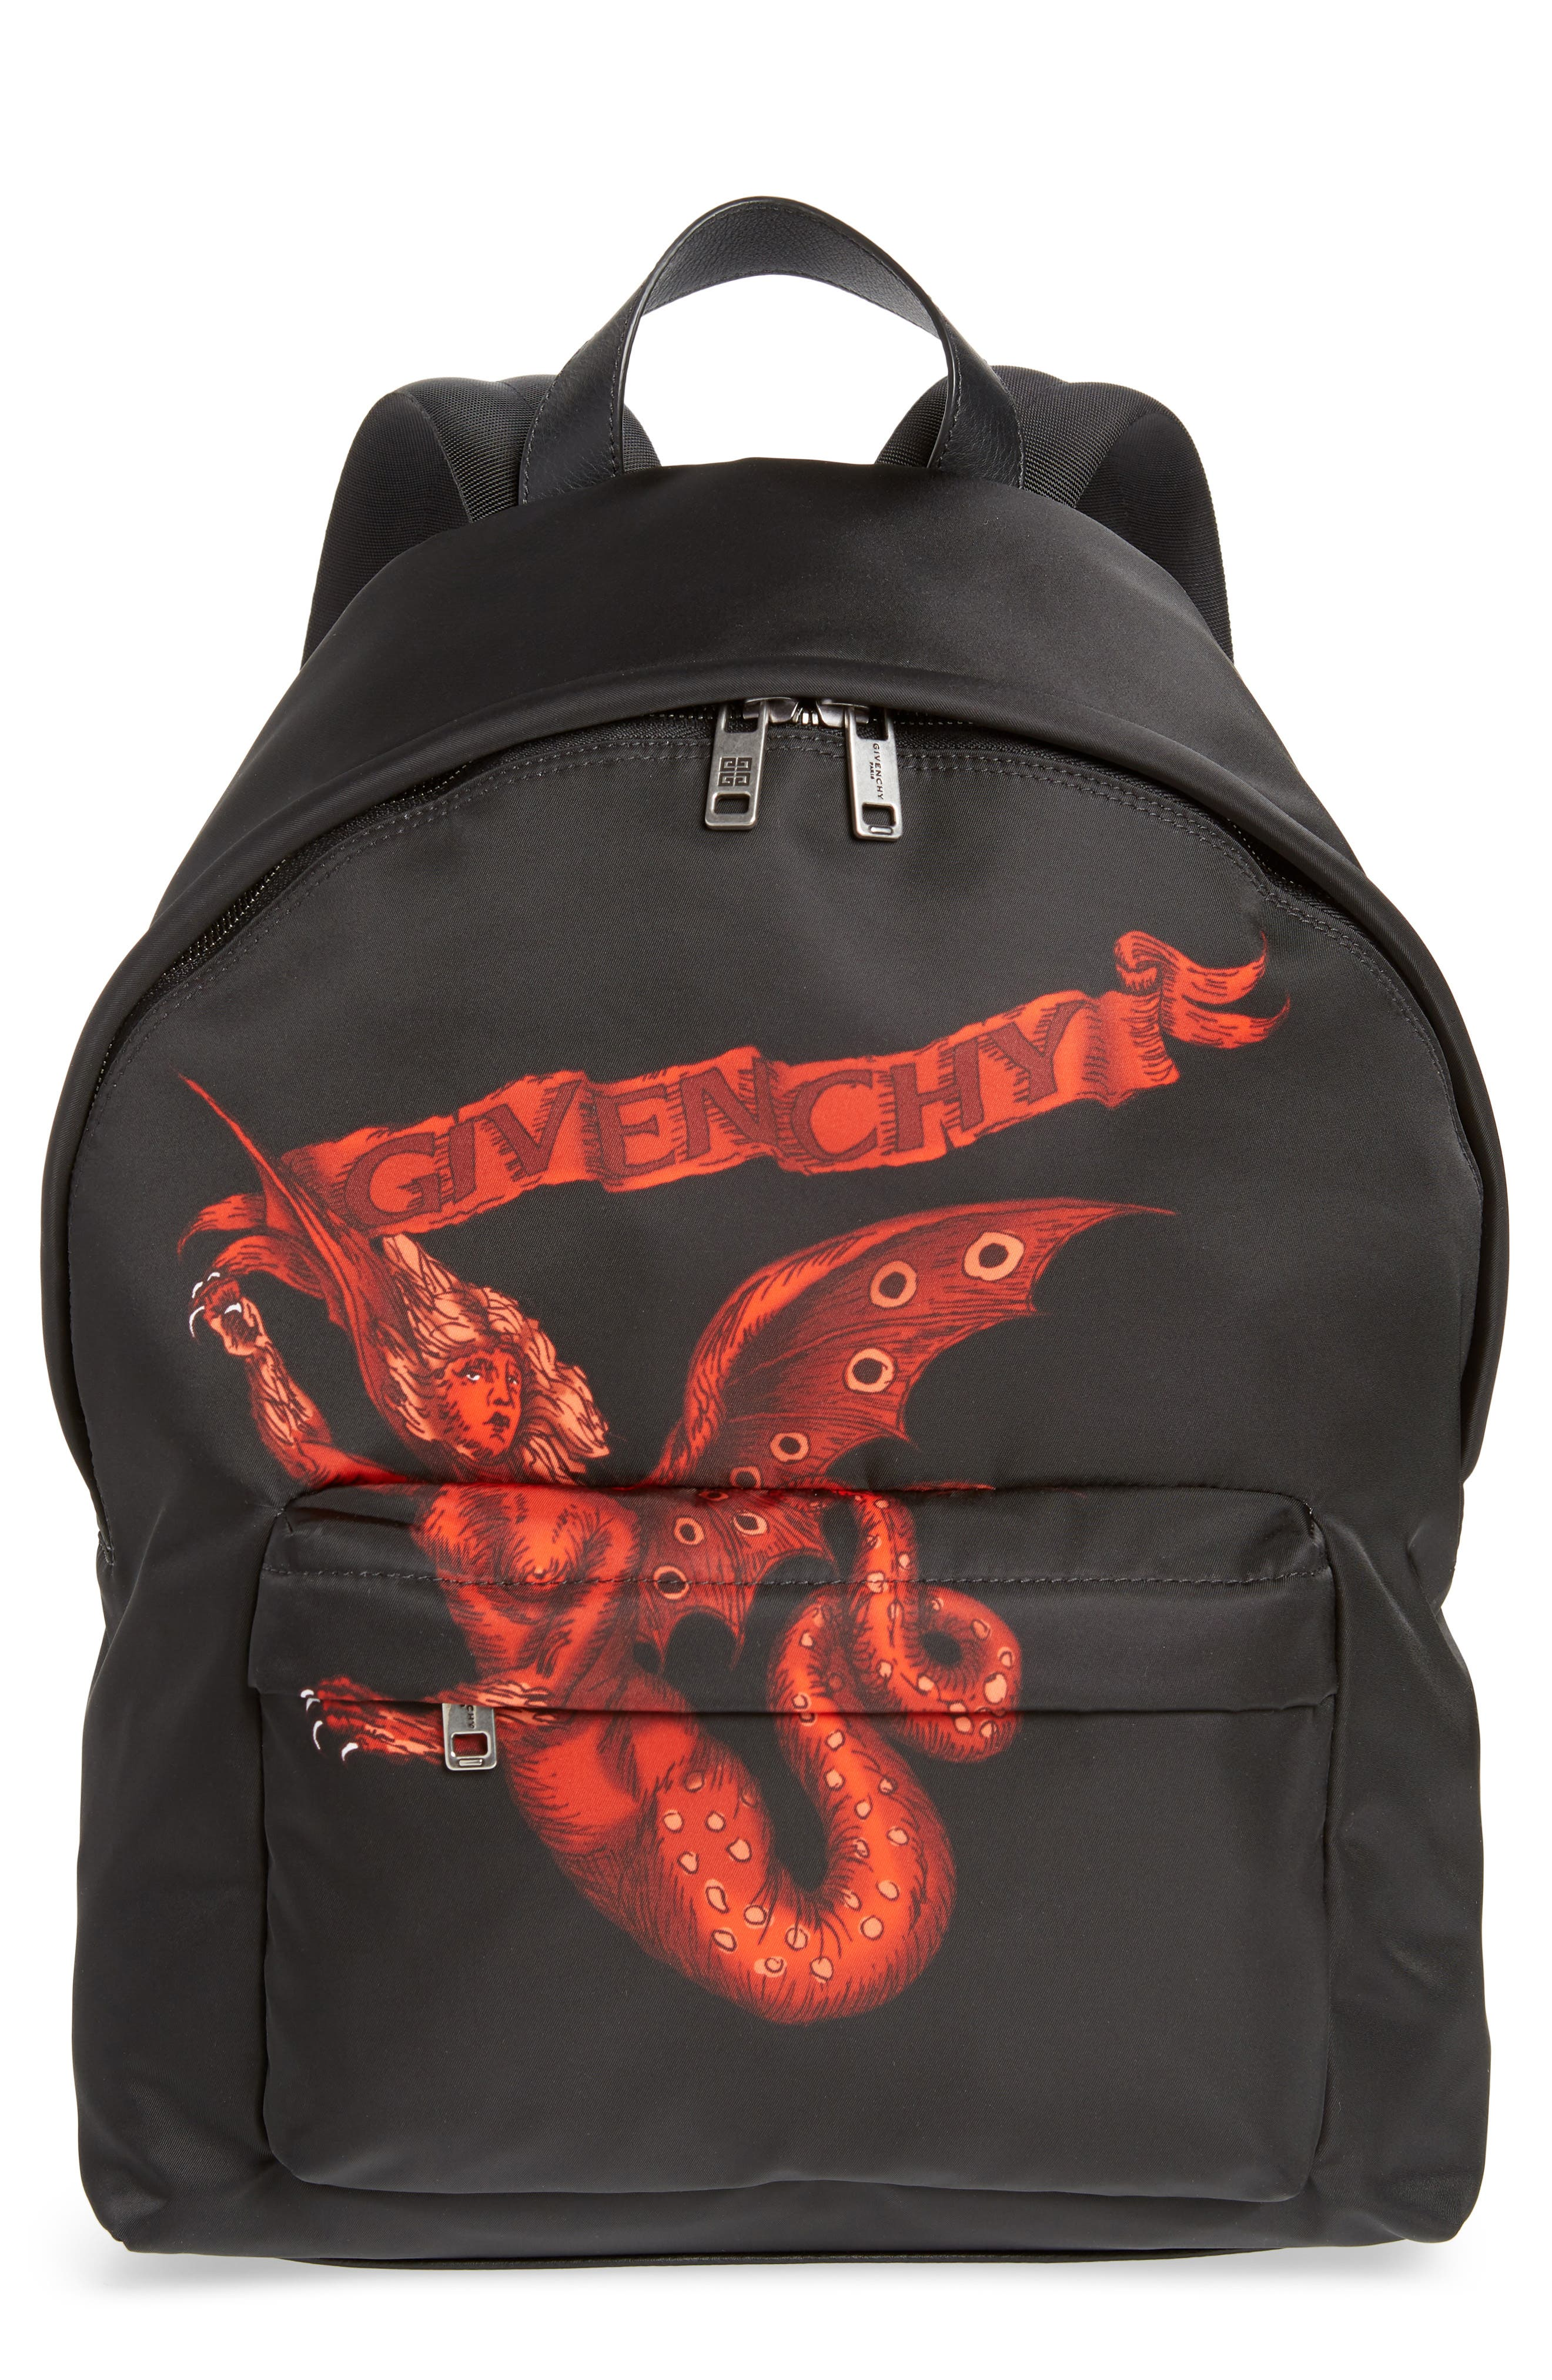 Winged Beast Backpack,                             Main thumbnail 1, color,                             BLACK MULTI